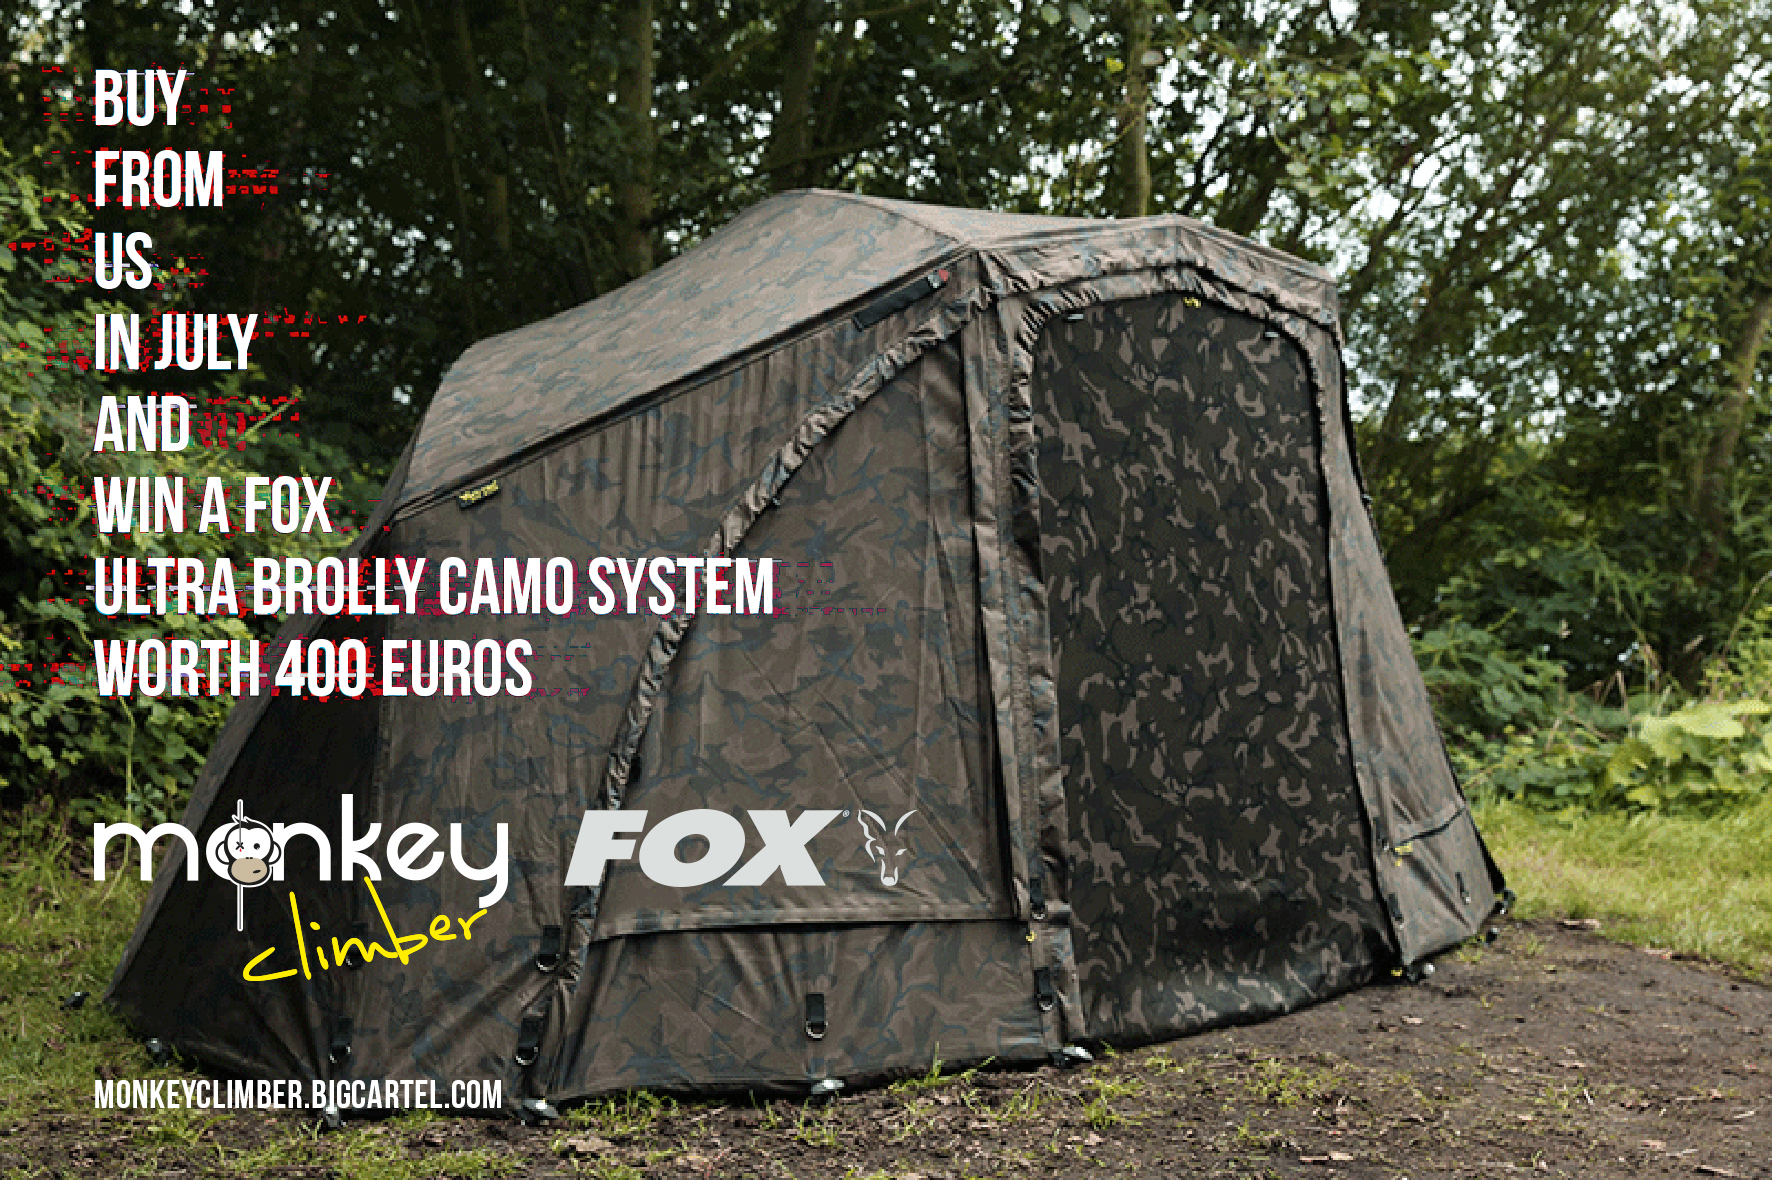 July competition: Win a Fox Ultra 60 Camo Brolly System worth 400 euros